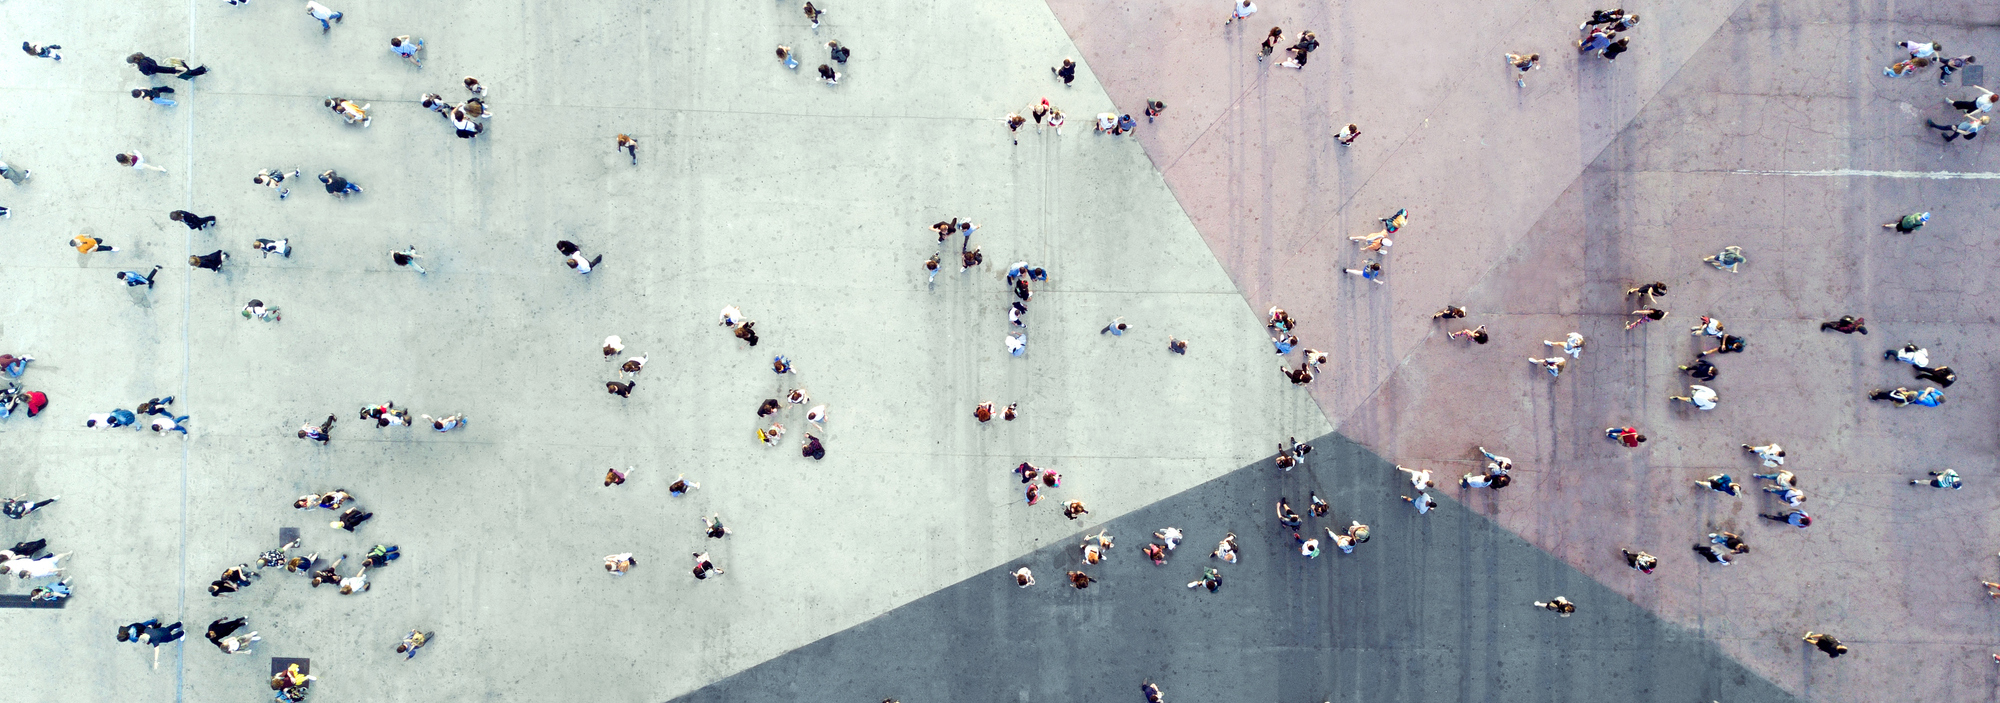 aerial photo of people outside